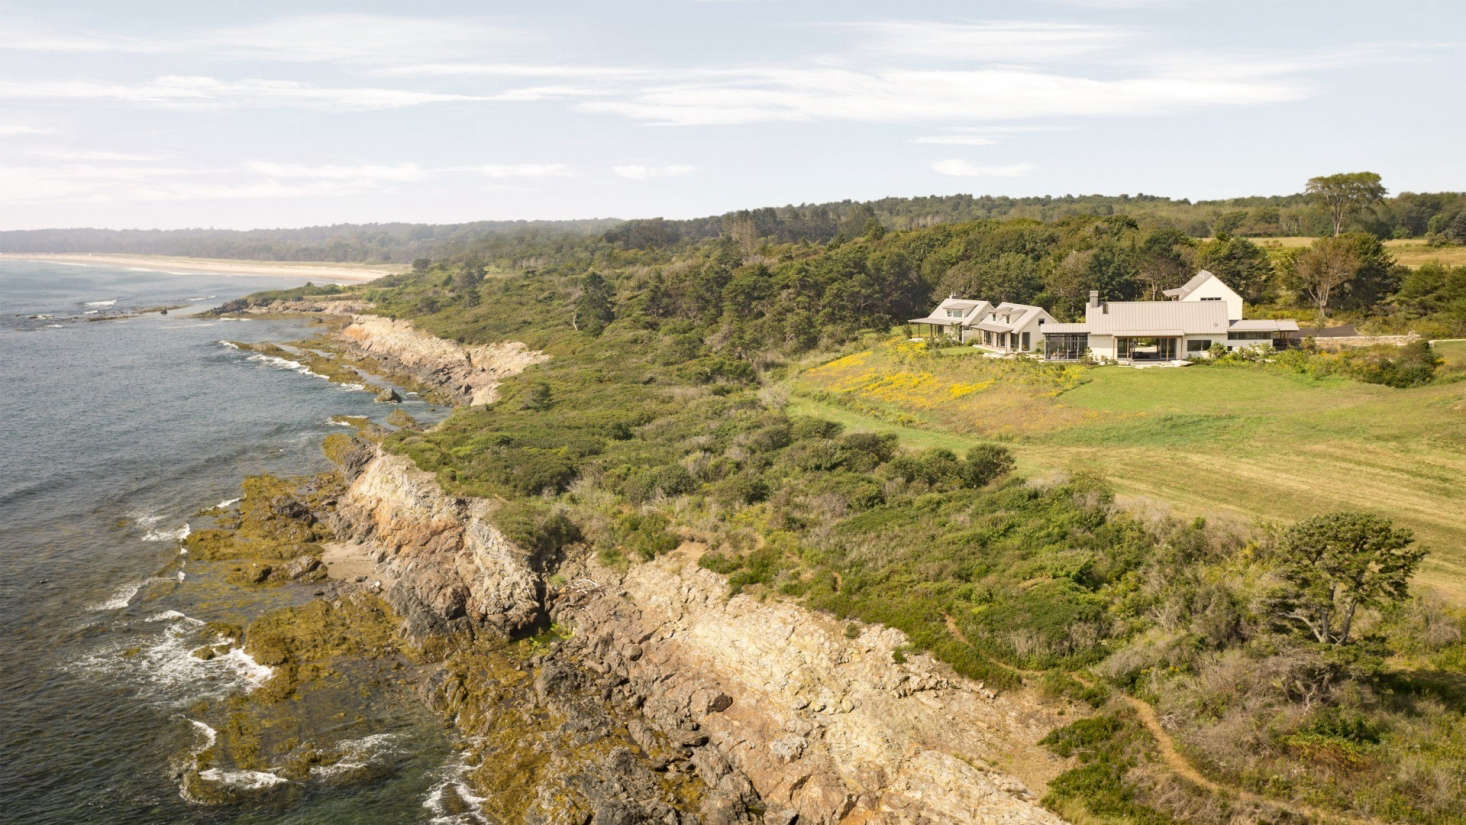 Throughout the coastal property, the landscape architect plannedlong stretches of trails and boardwalks through meadow, woodlands, wetland, and shoreline.